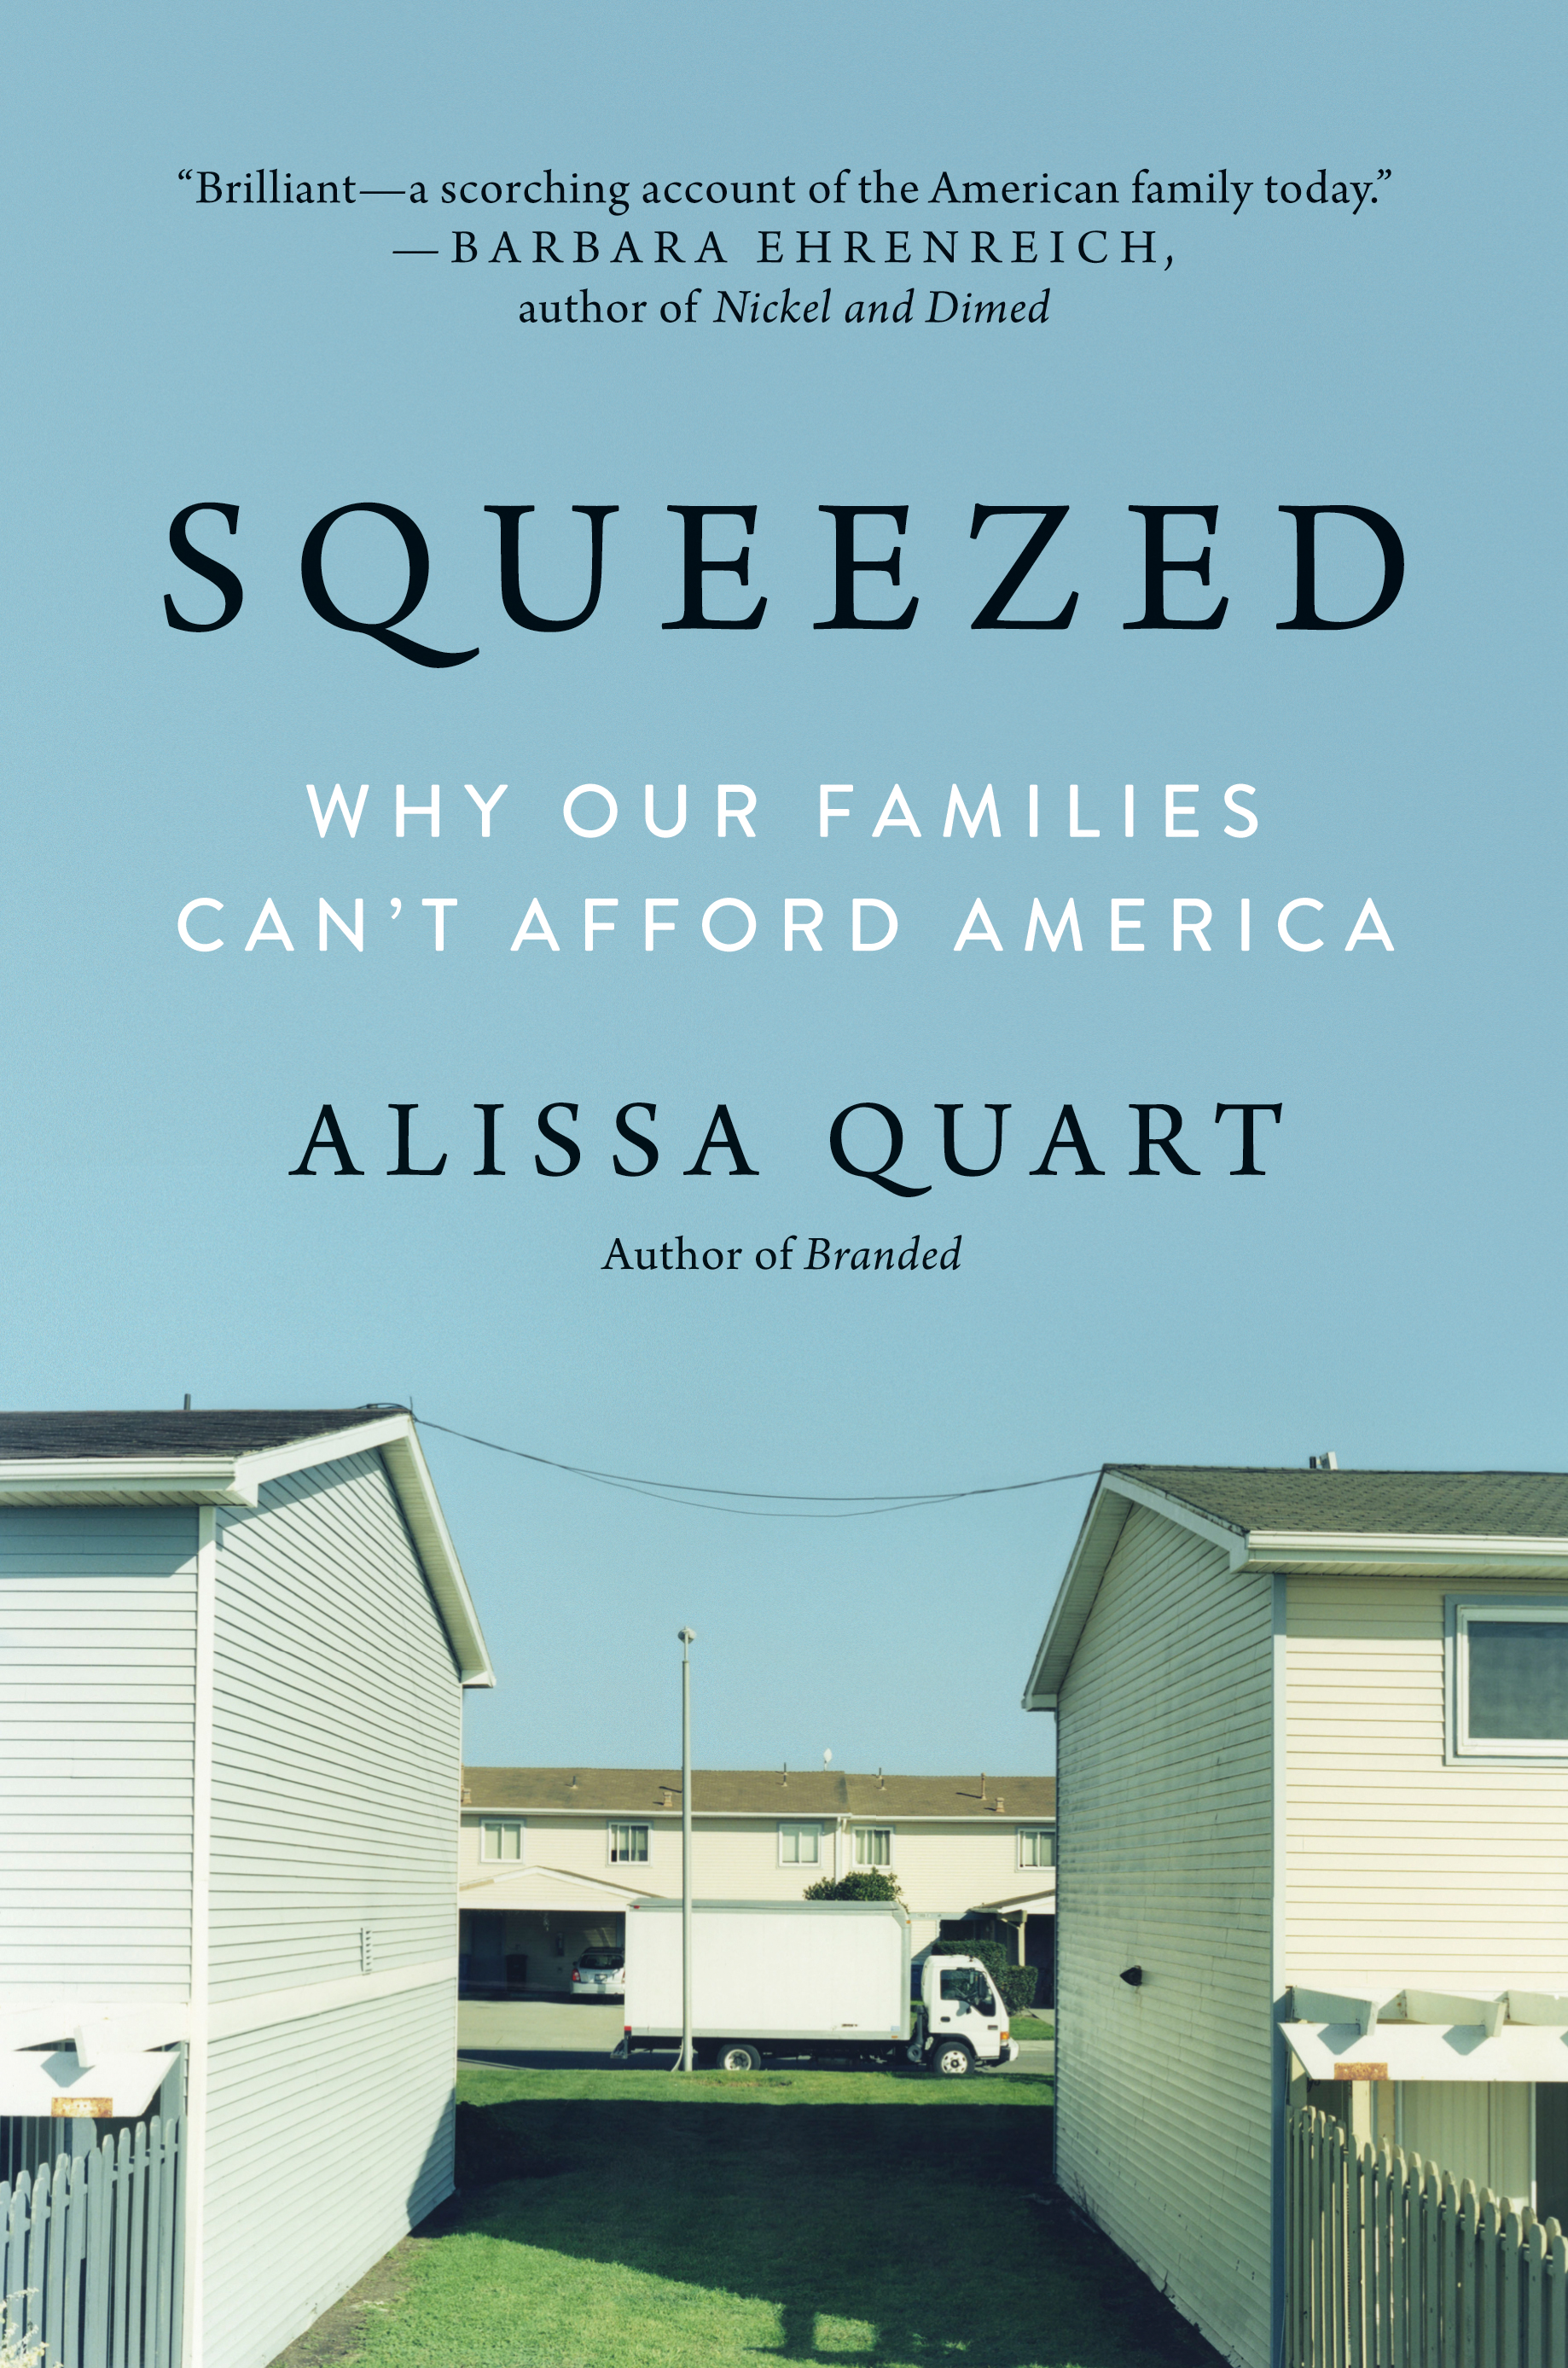 Squeezed: Why Our Families Can't Afford America - By Alissa Quart